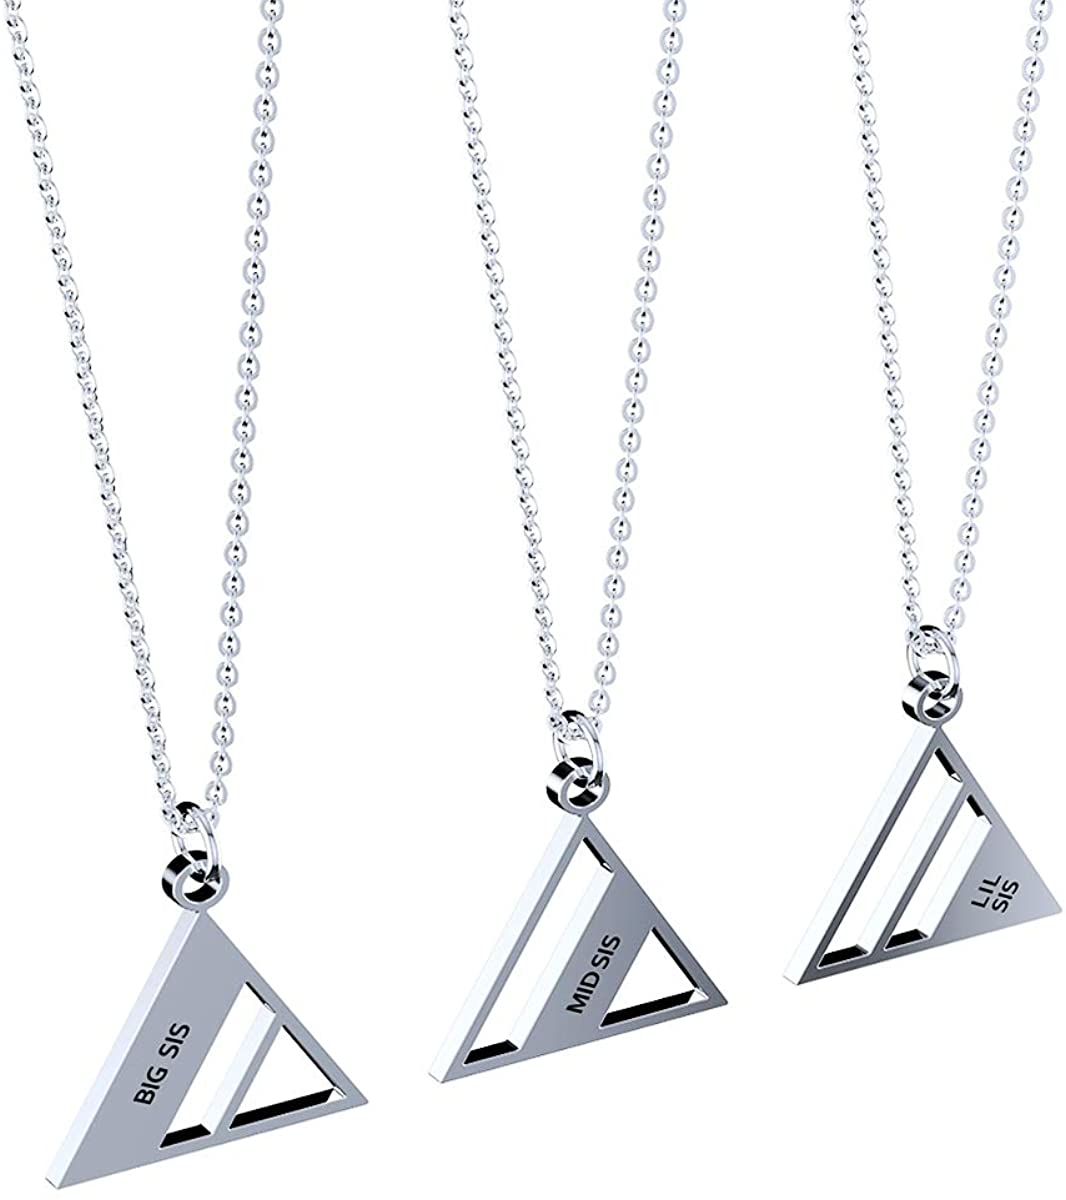 3 Piece of Big Sis Middle Sis Lil Sister Triangle Pendant Necklace Girls Exquisite Personalized Gift Set Silver-Tone, 17